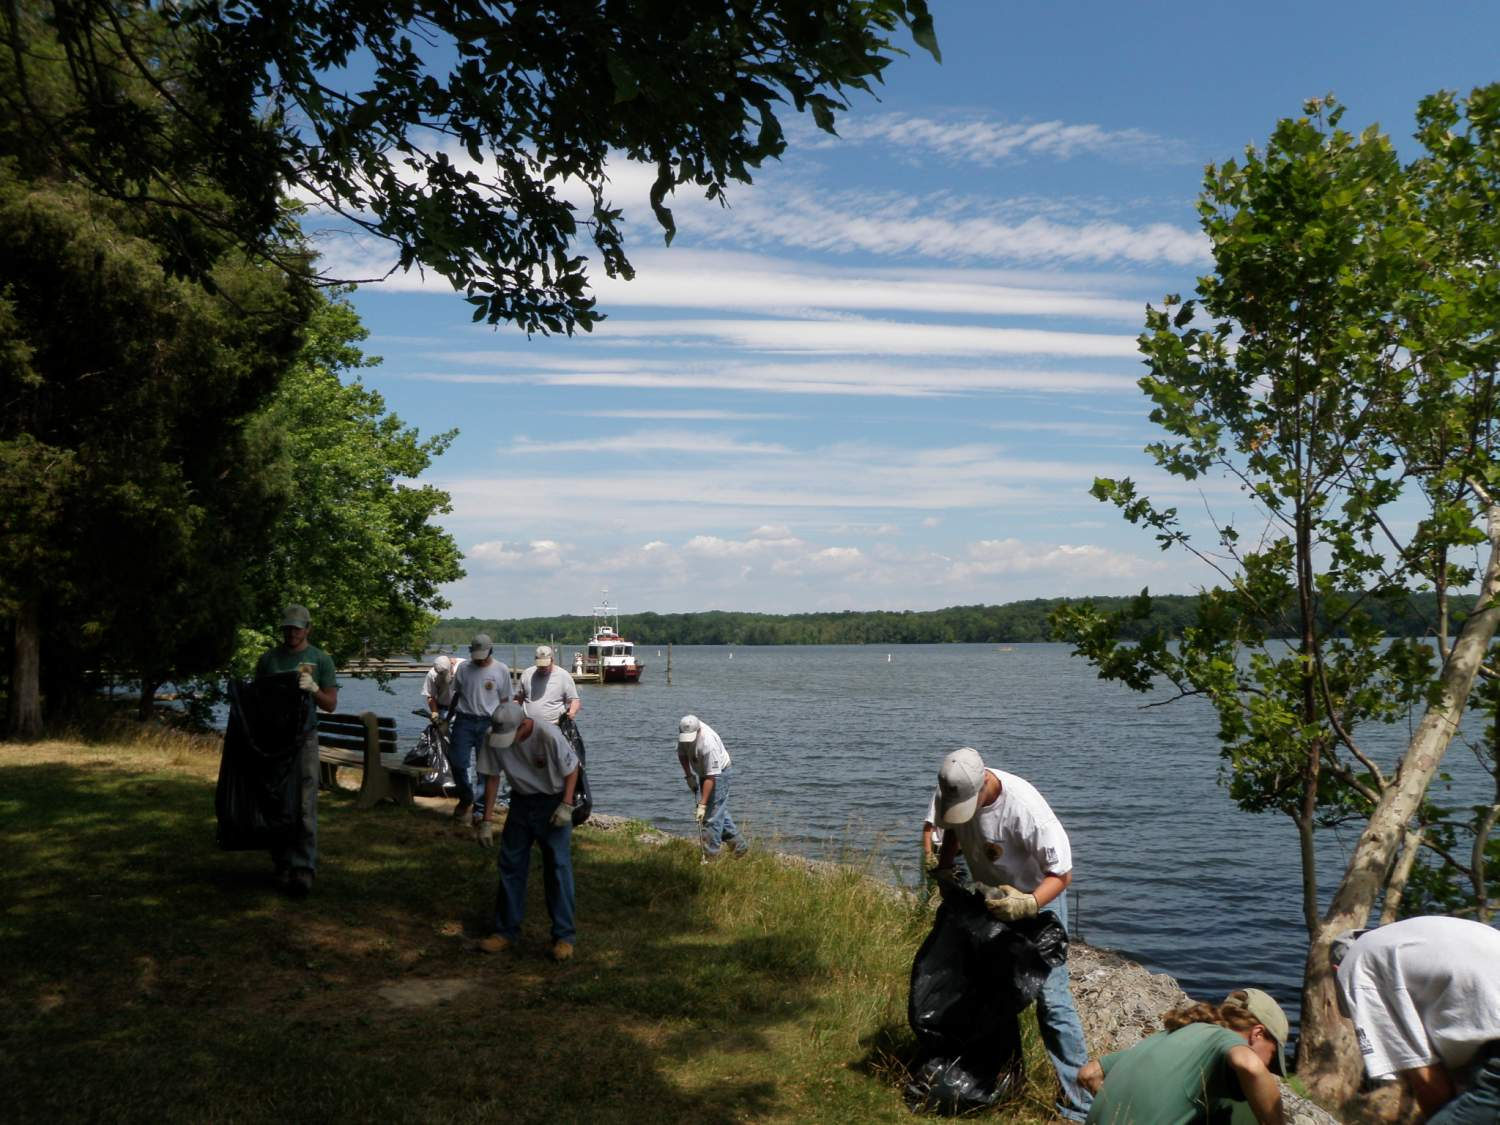 Volunteers cleaning the surroundings of the lake